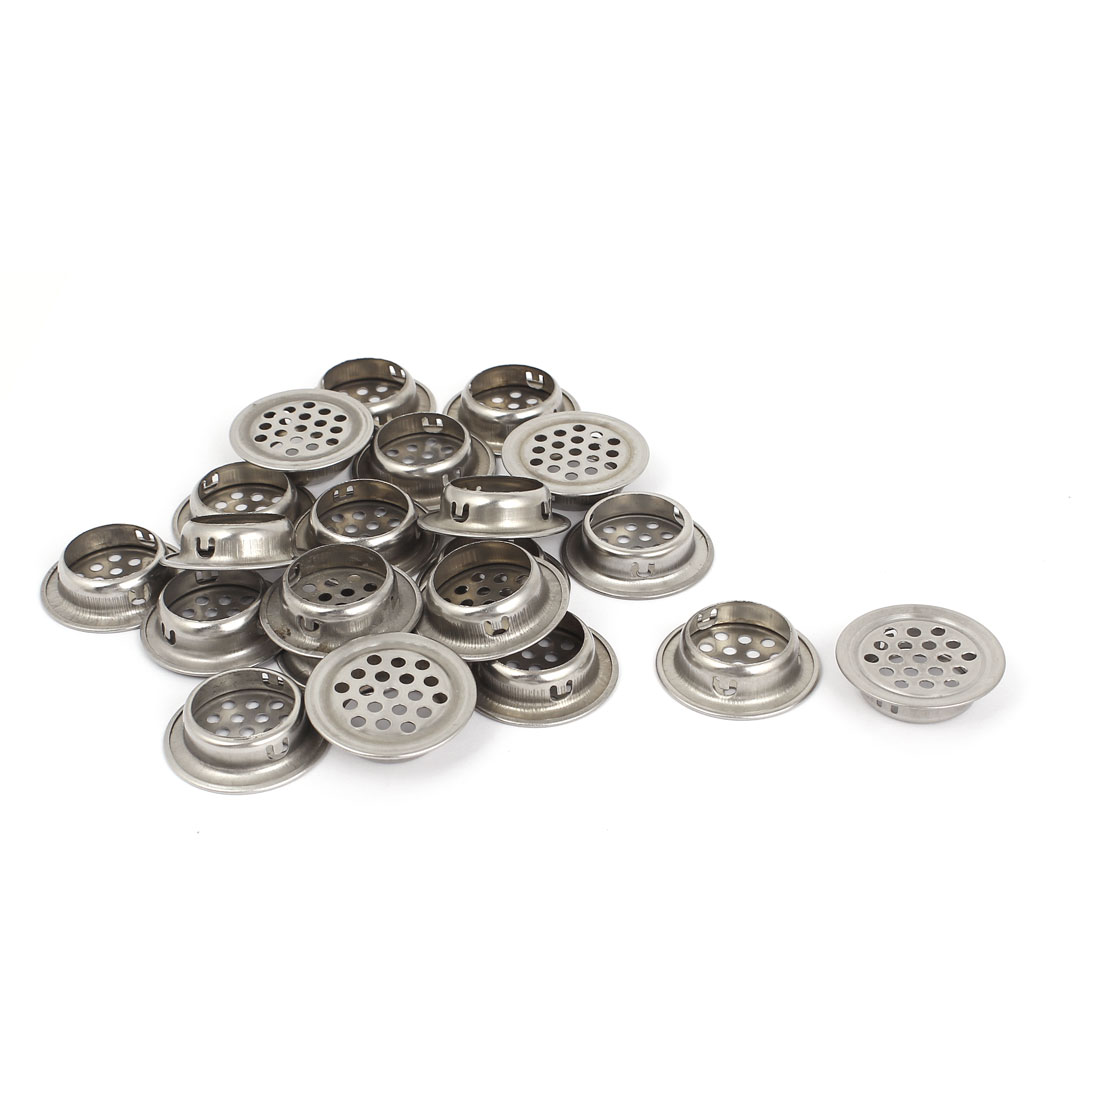 25pcs 25mm Dia Round Stainless Steel Mesh Wardrobe Cabinet Air Vent Louver Cover